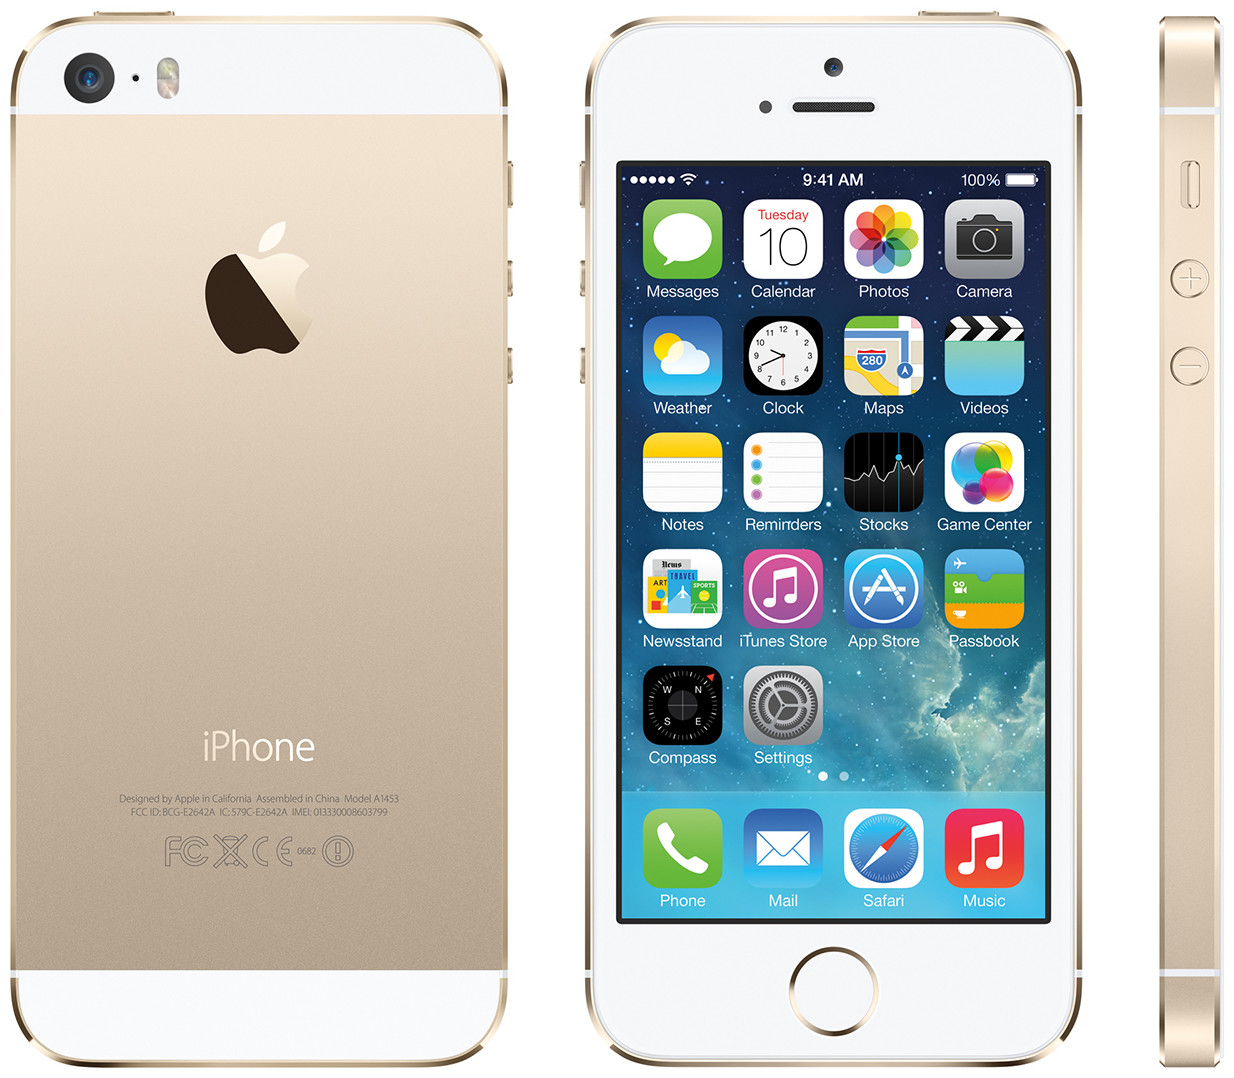 apple iphone se a1723 64gb - specs and price